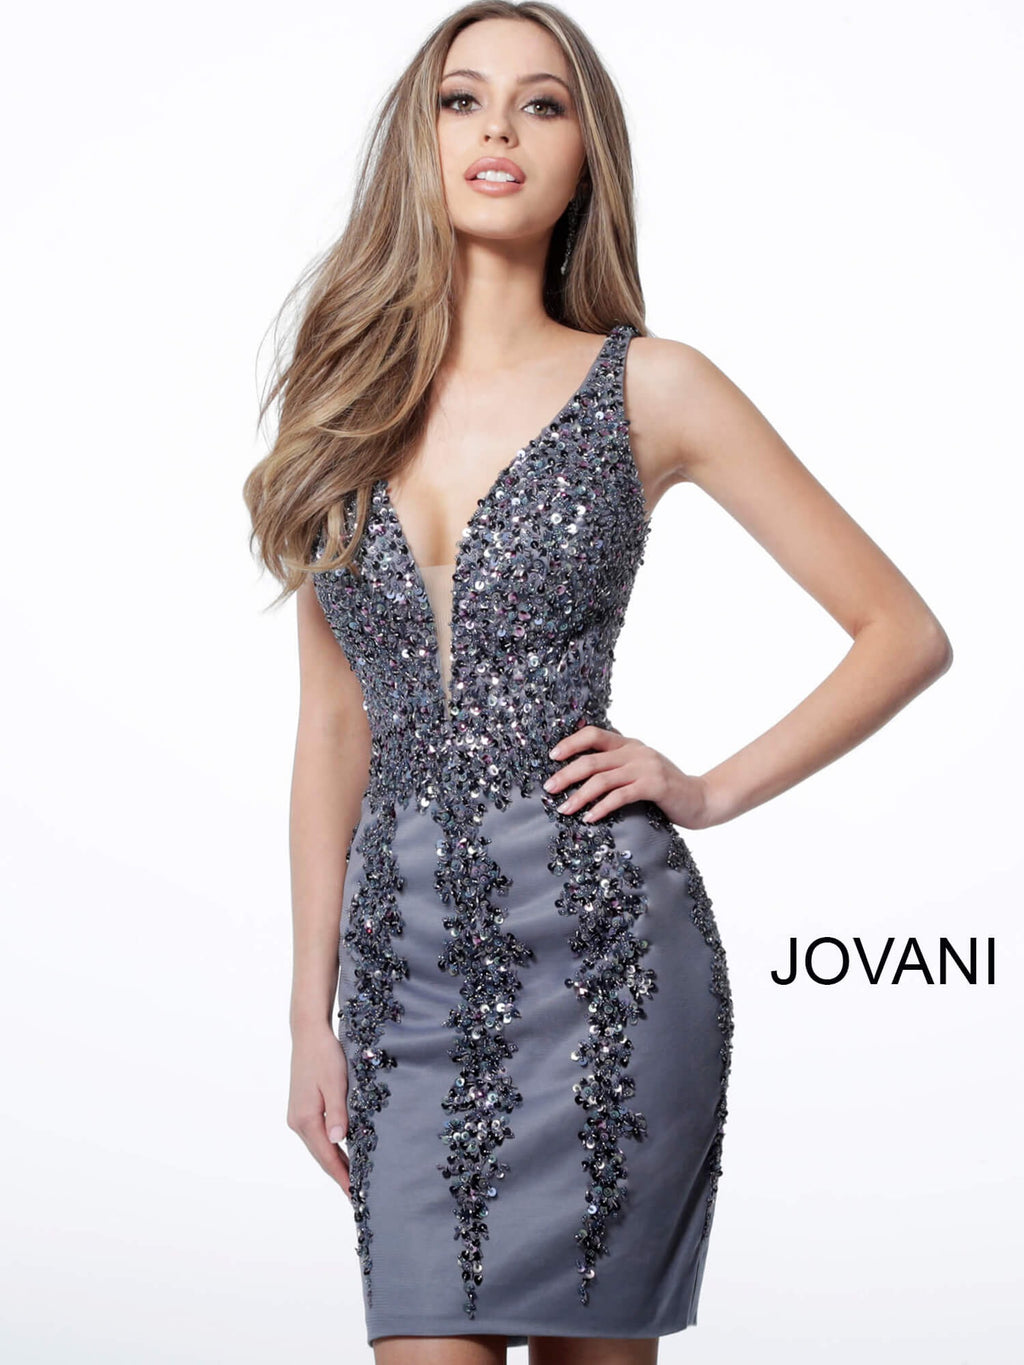 JOVANI 2530 Embellished Sleeveless Cocktail Dress